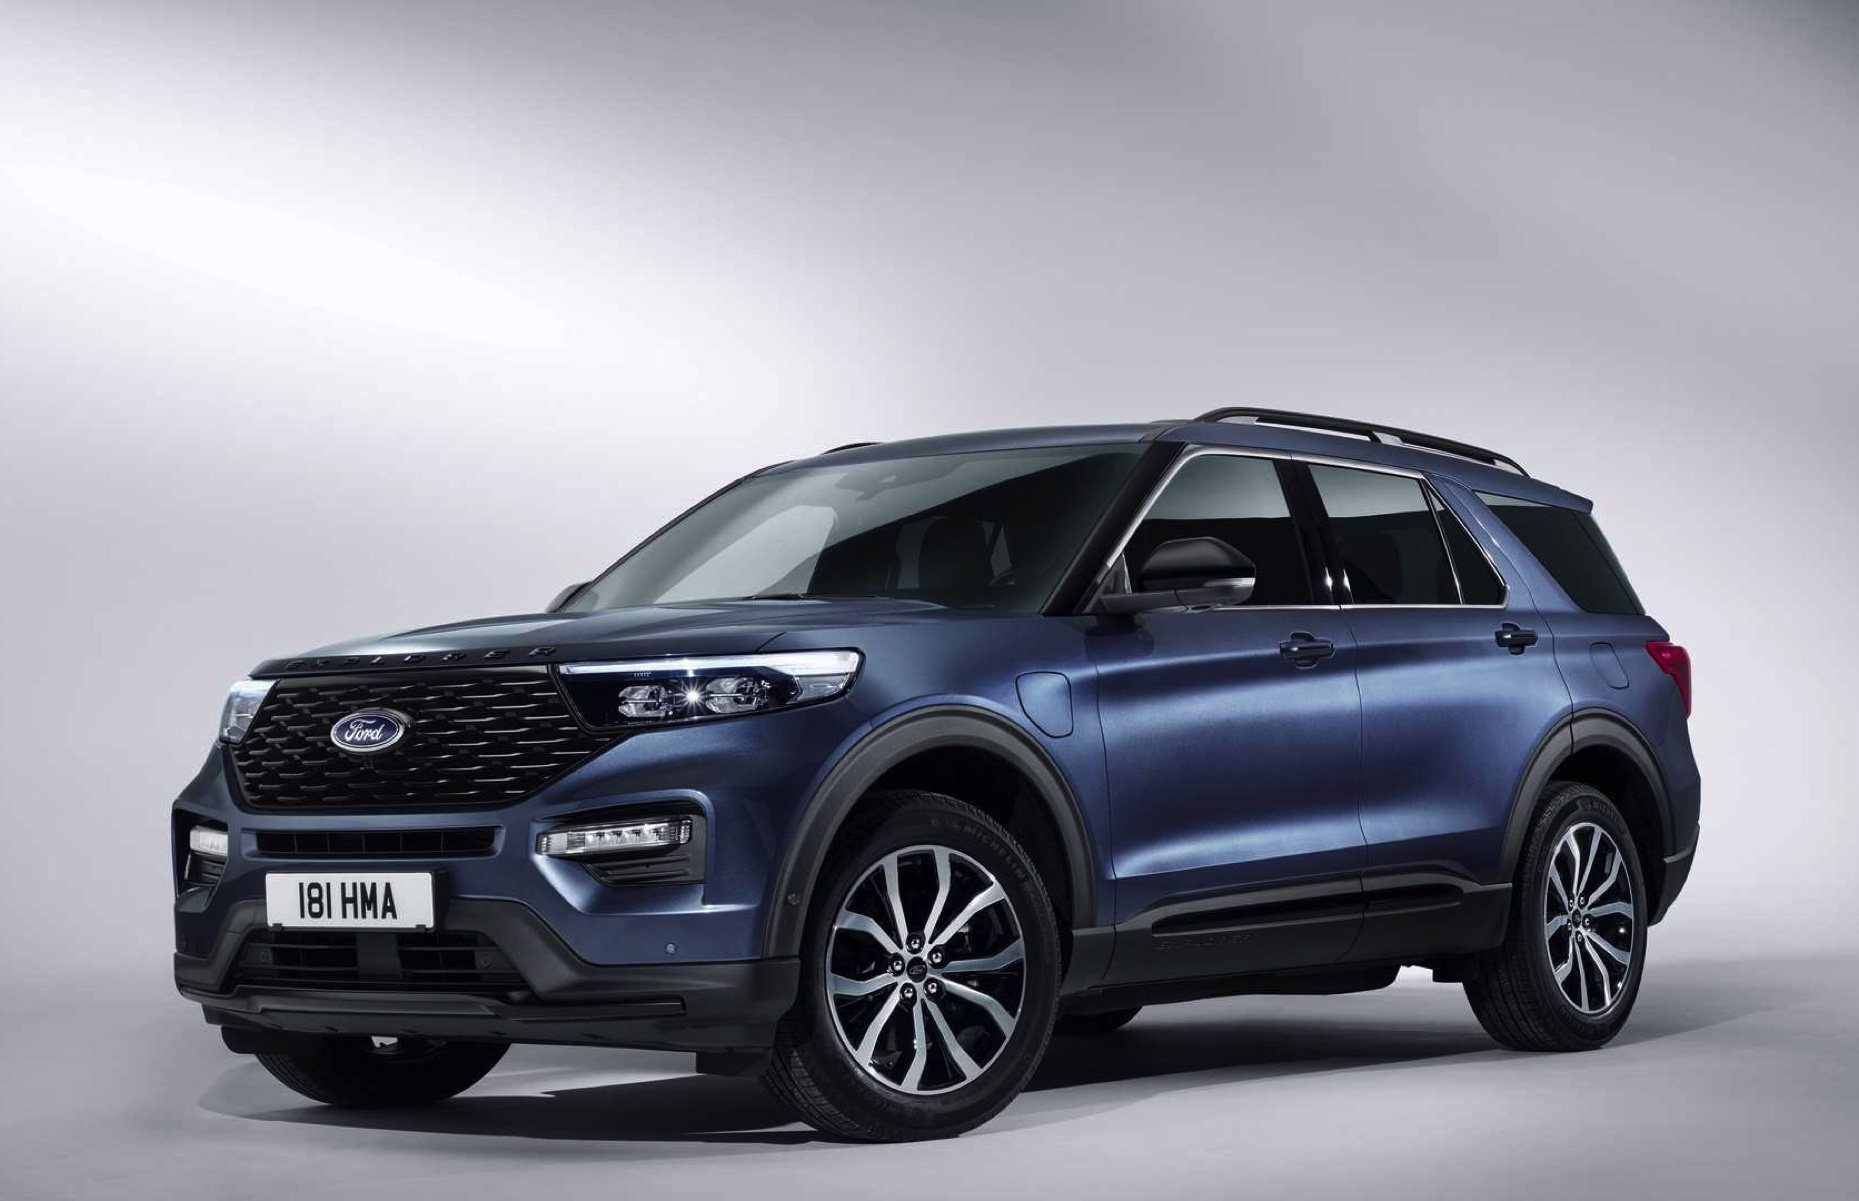 27 Best Review When Will 2020 Ford Explorer Be Available Interior for When Will 2020 Ford Explorer Be Available